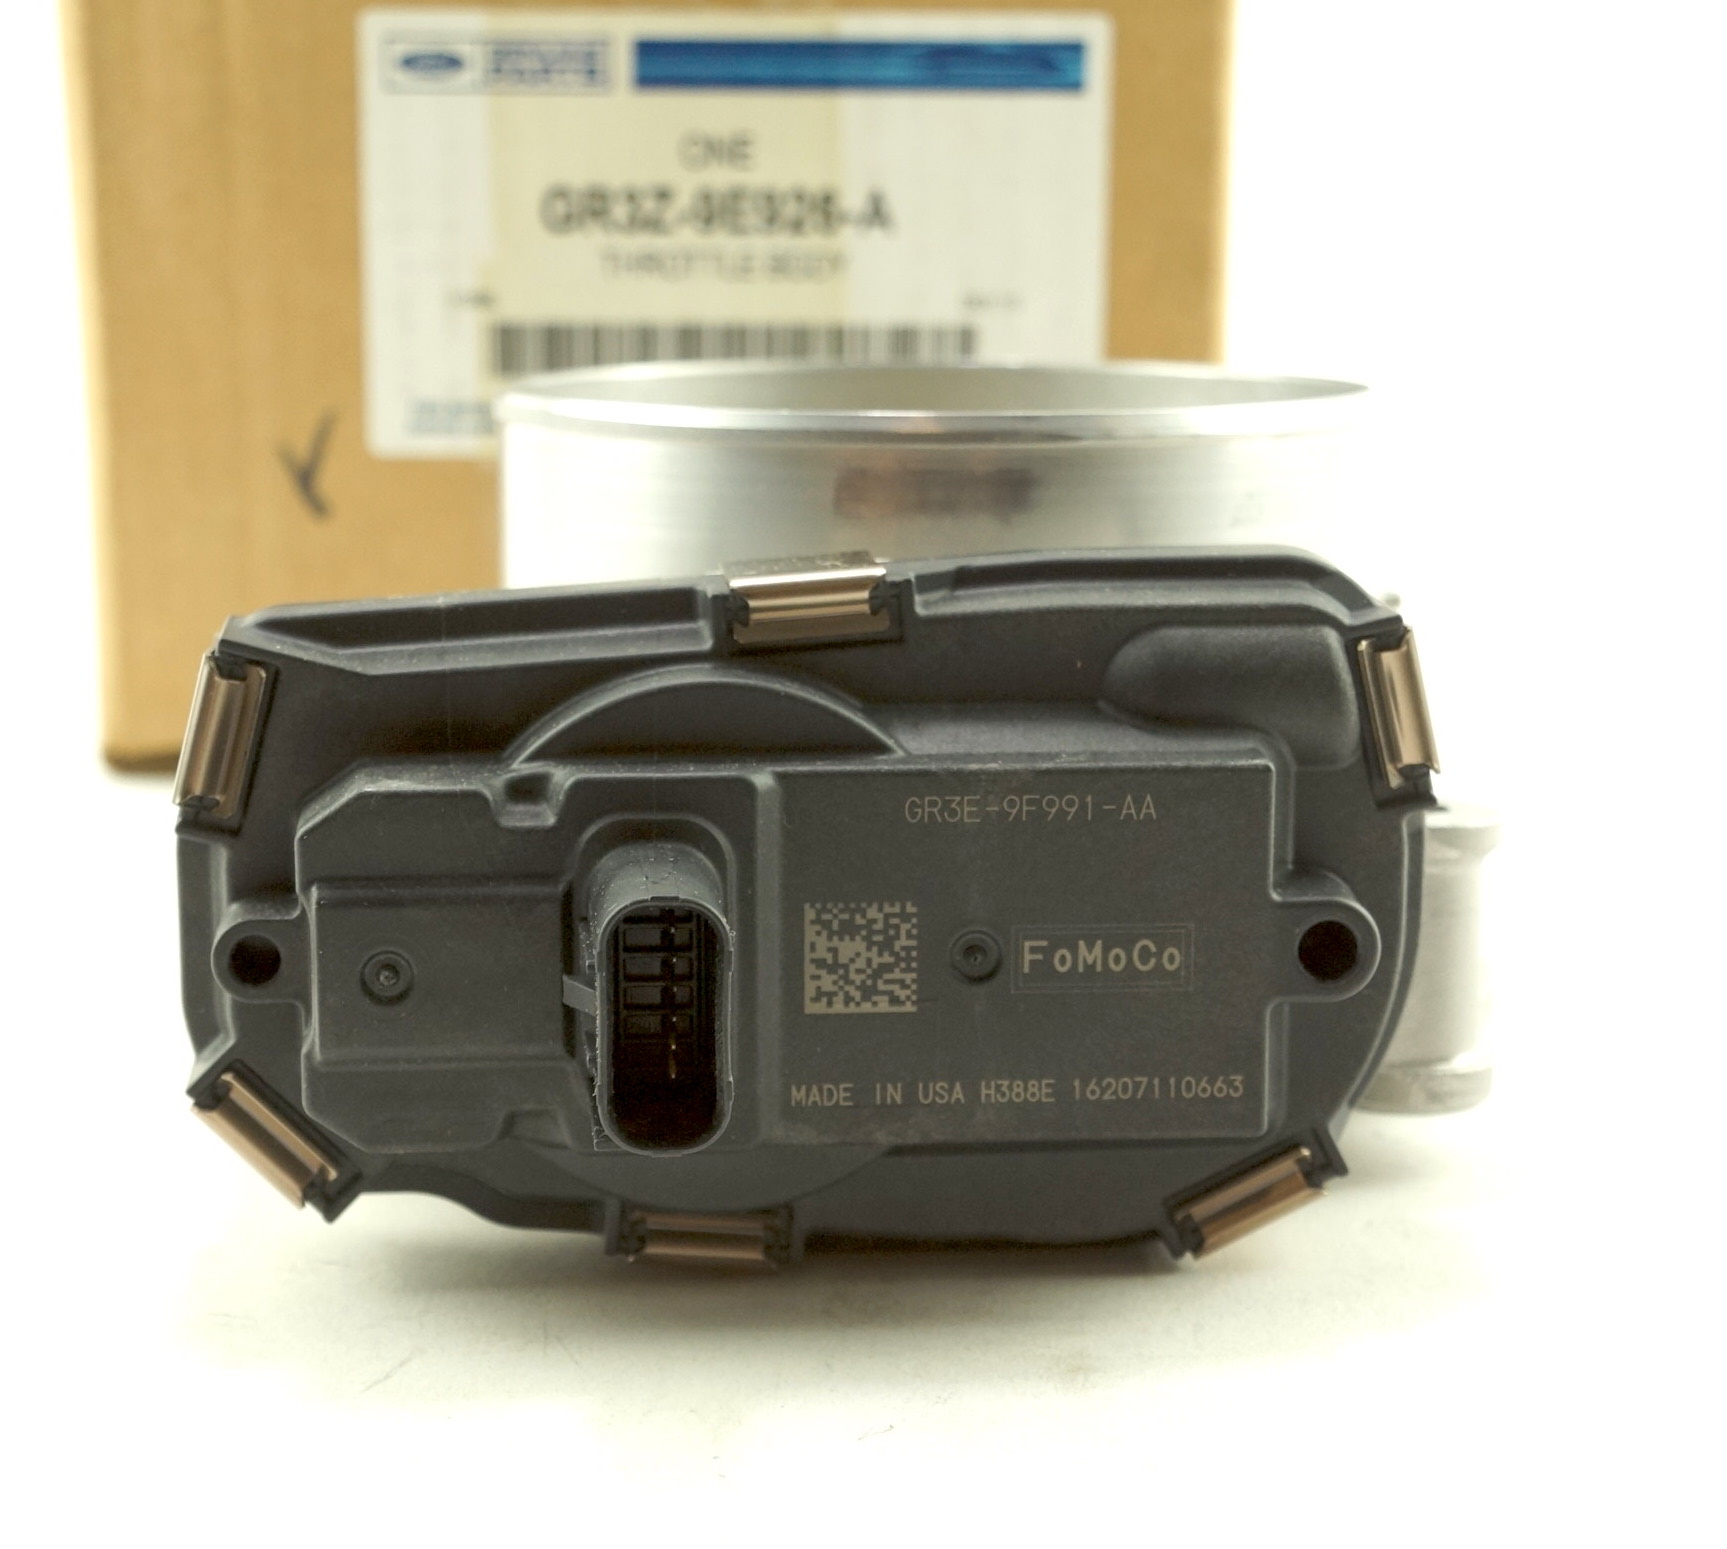 Genuine OEM GR3Z9E926A Ford 15-17 Mustang Throttle Body New Fast Free Shipping - image 7